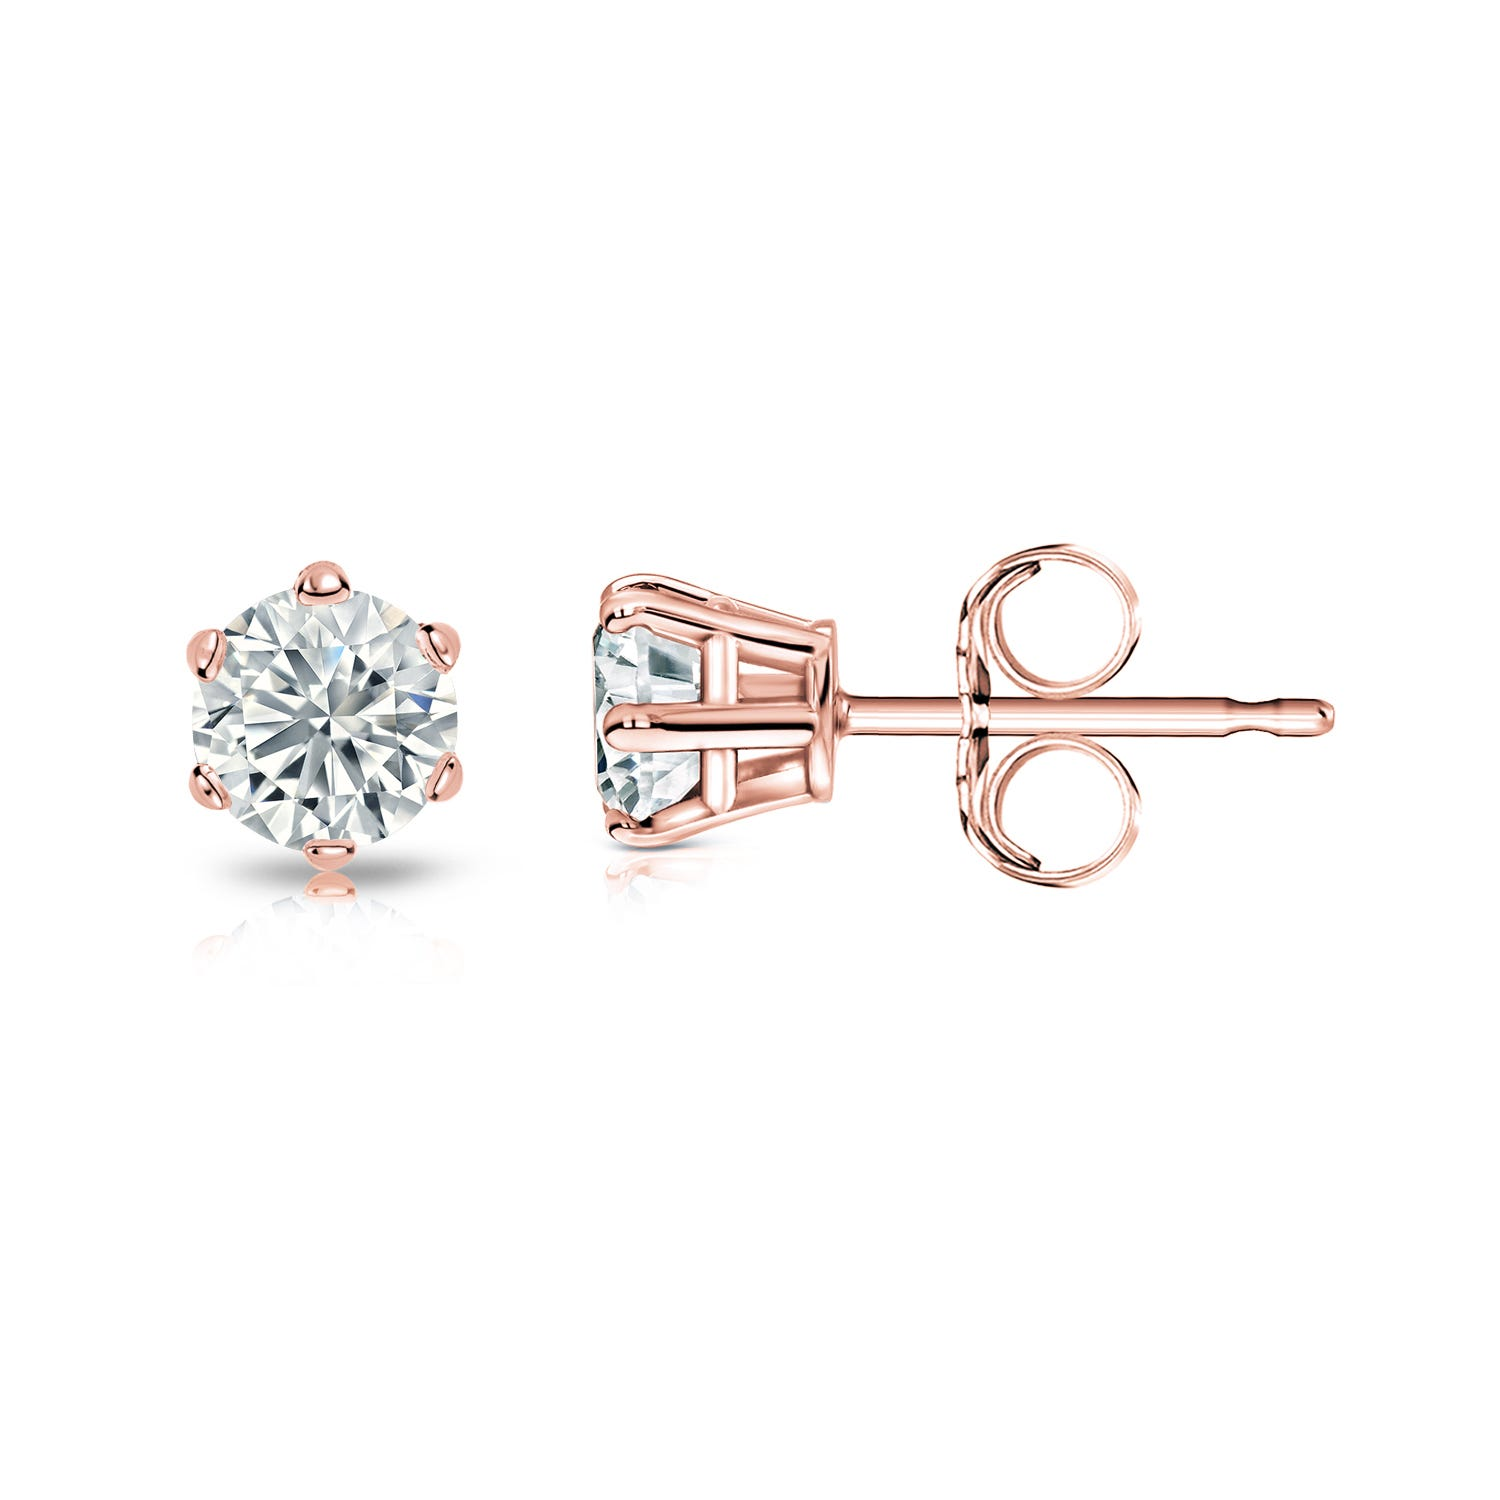 Round Diamond 1/5ctw. (IJ-I1) Solitaire Stud 6-Prong Earrings in 14K Rose Gold